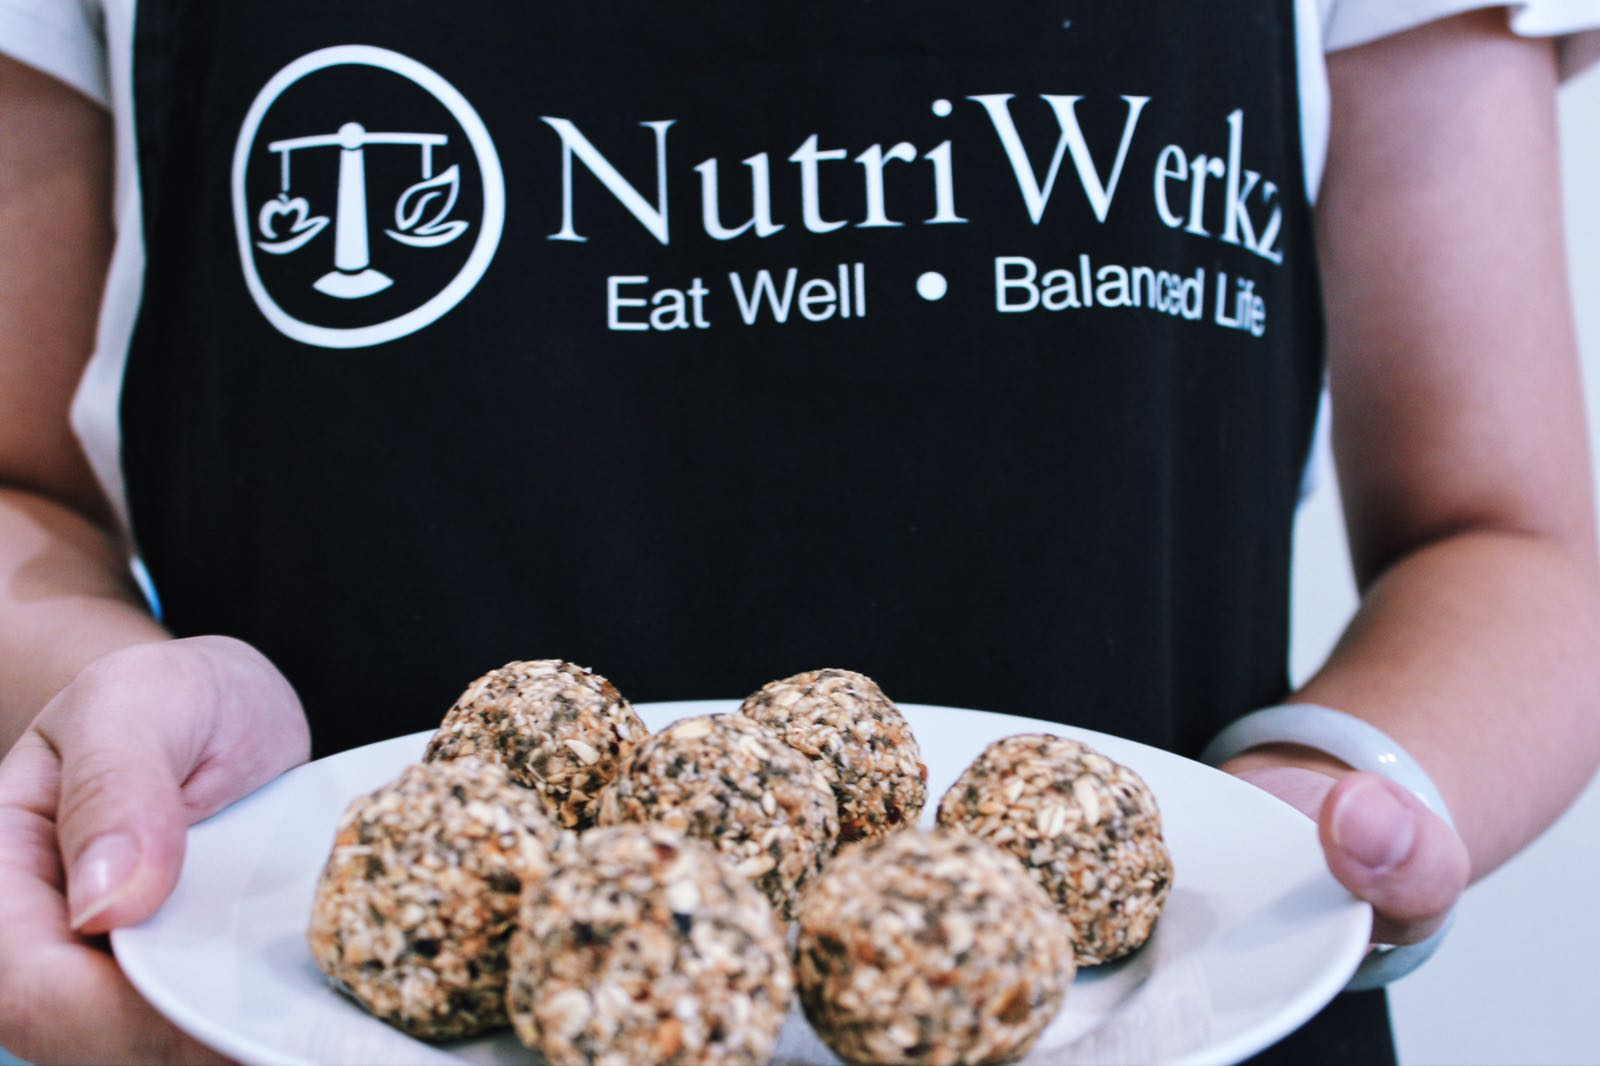 NutriWerkz cooking class to help people with dietary concerns.